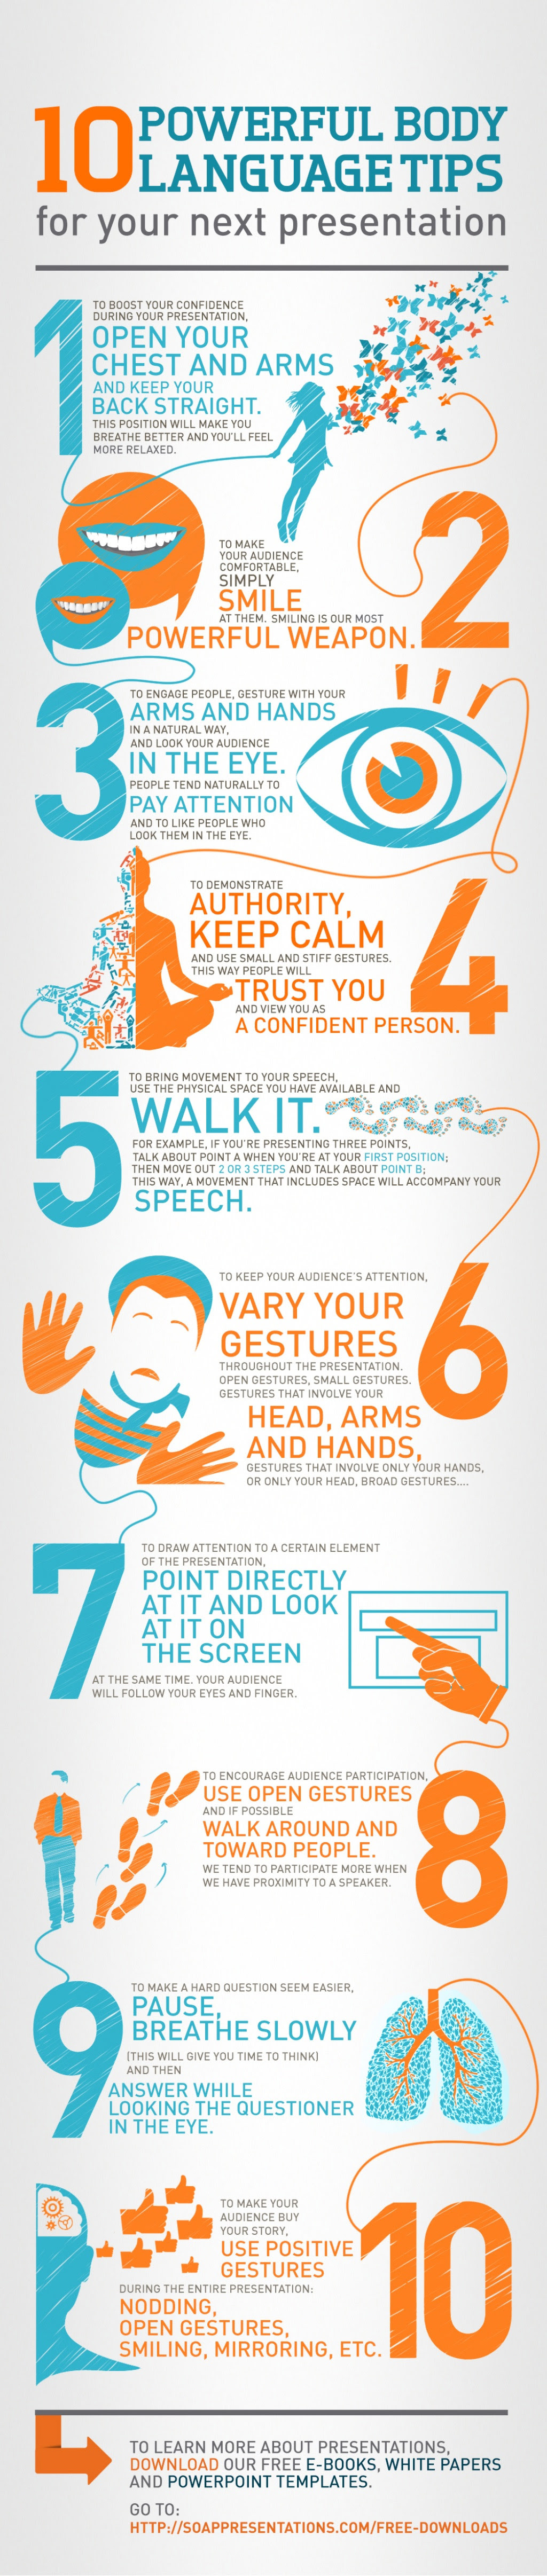 body language tips for presentations